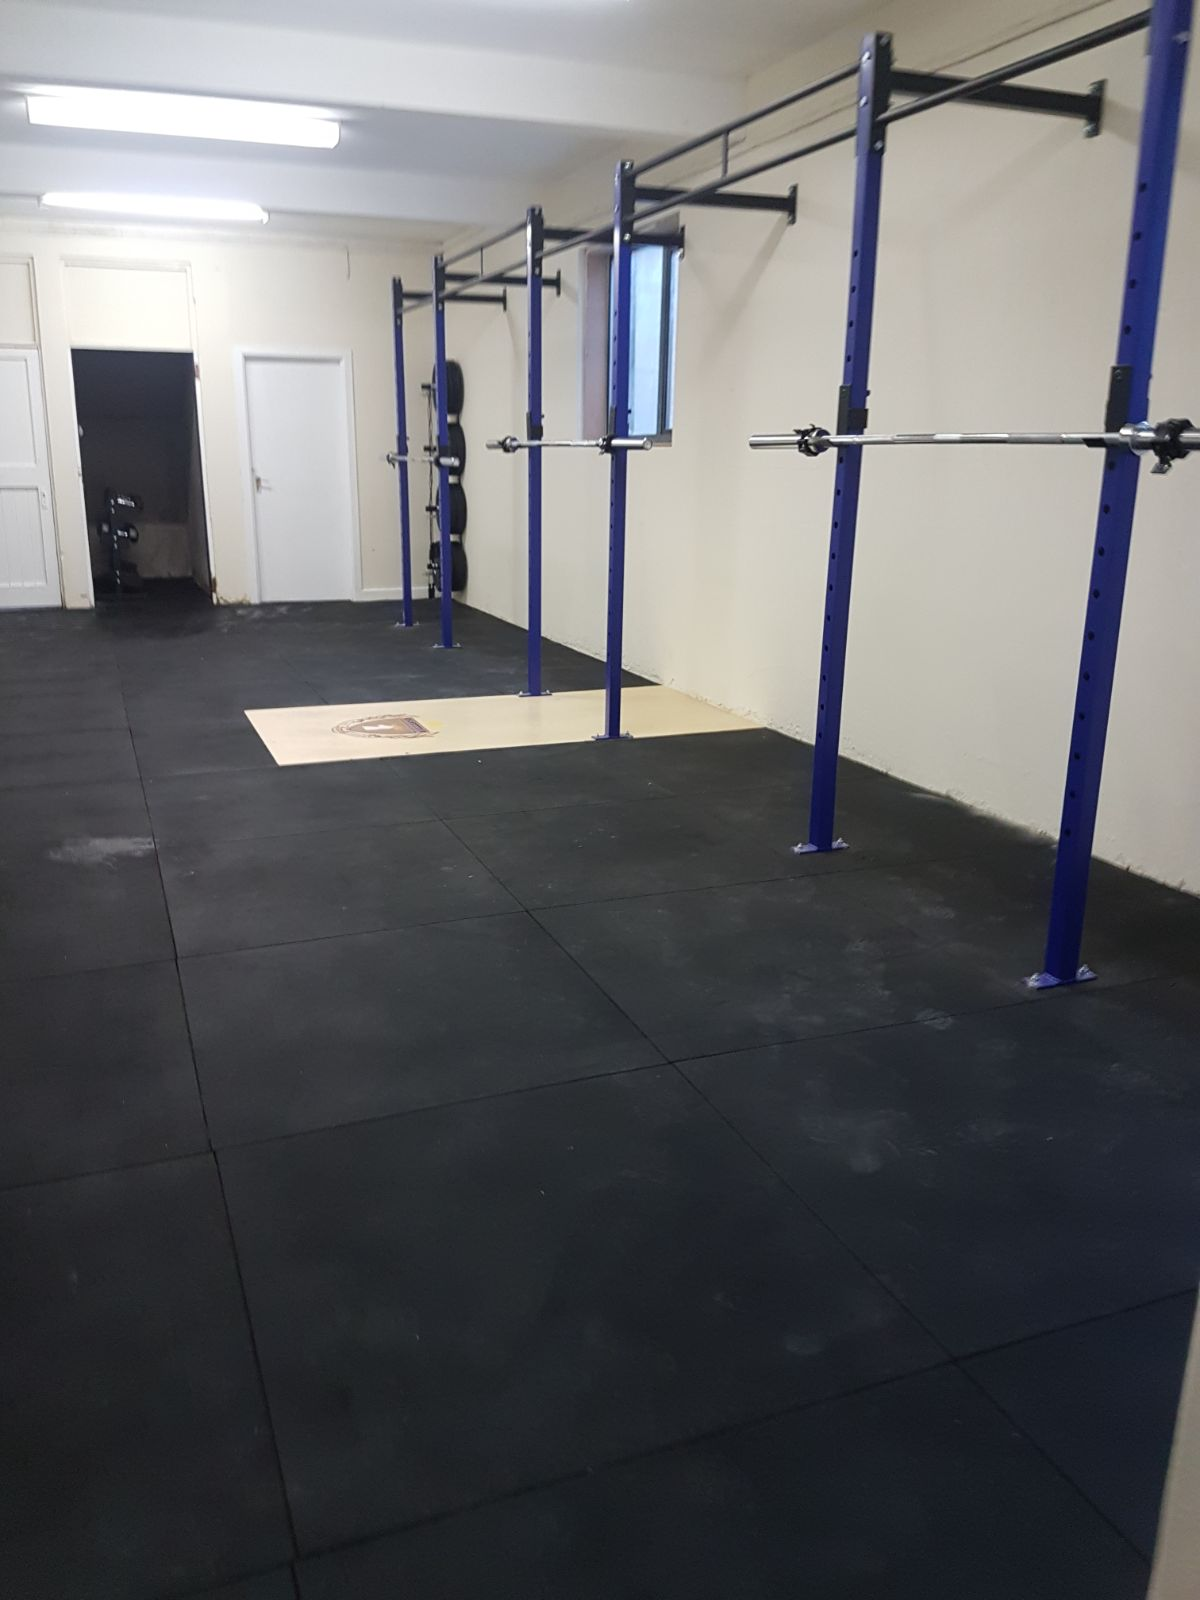 Gym installations fitness equipment ireland best for for Gym flooring